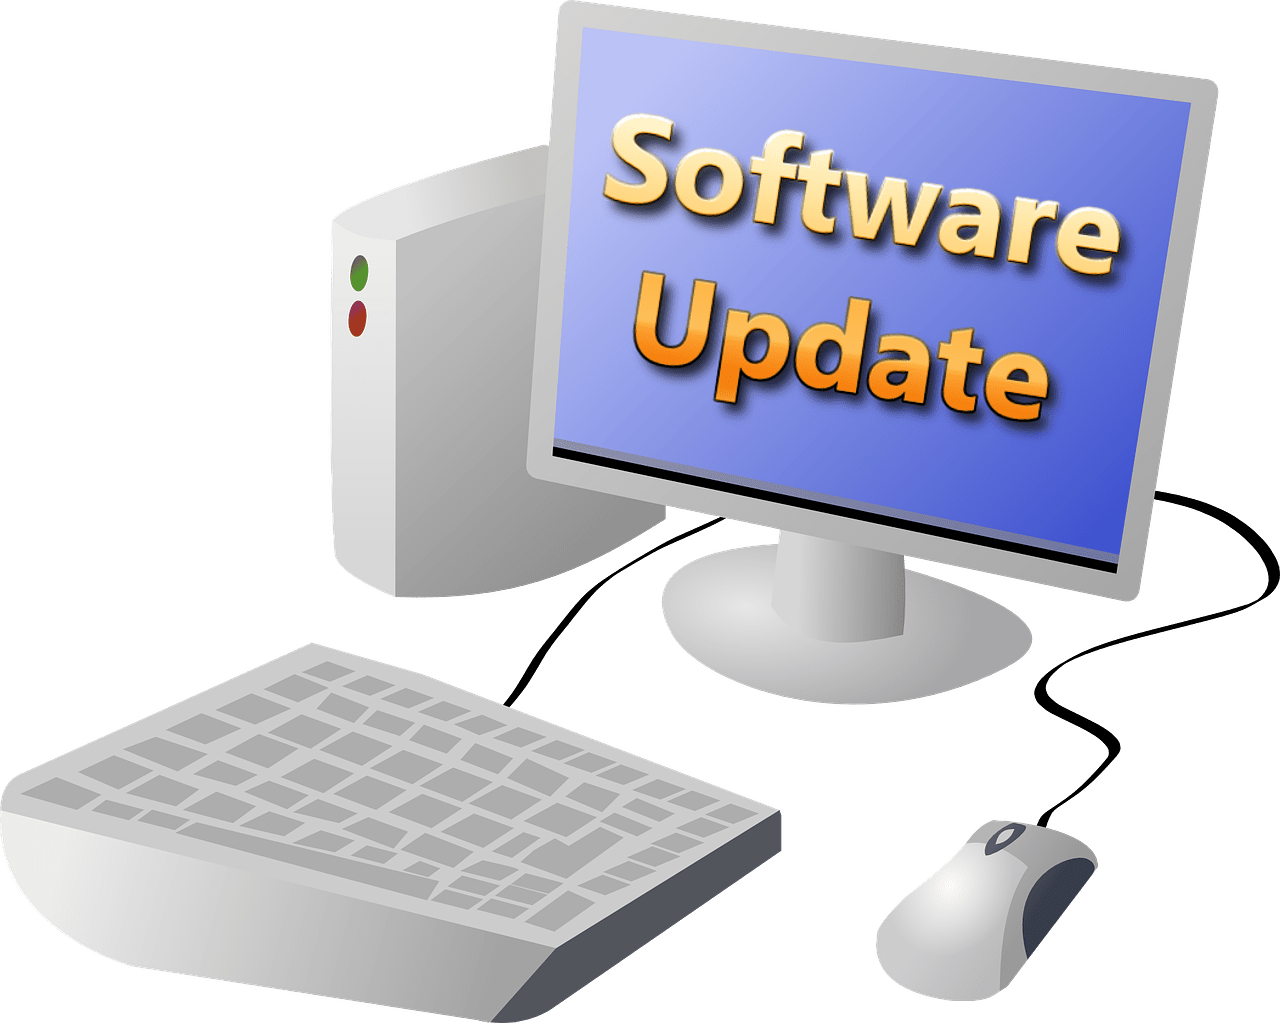 MUCheck Suite 9.3.0 Update Available